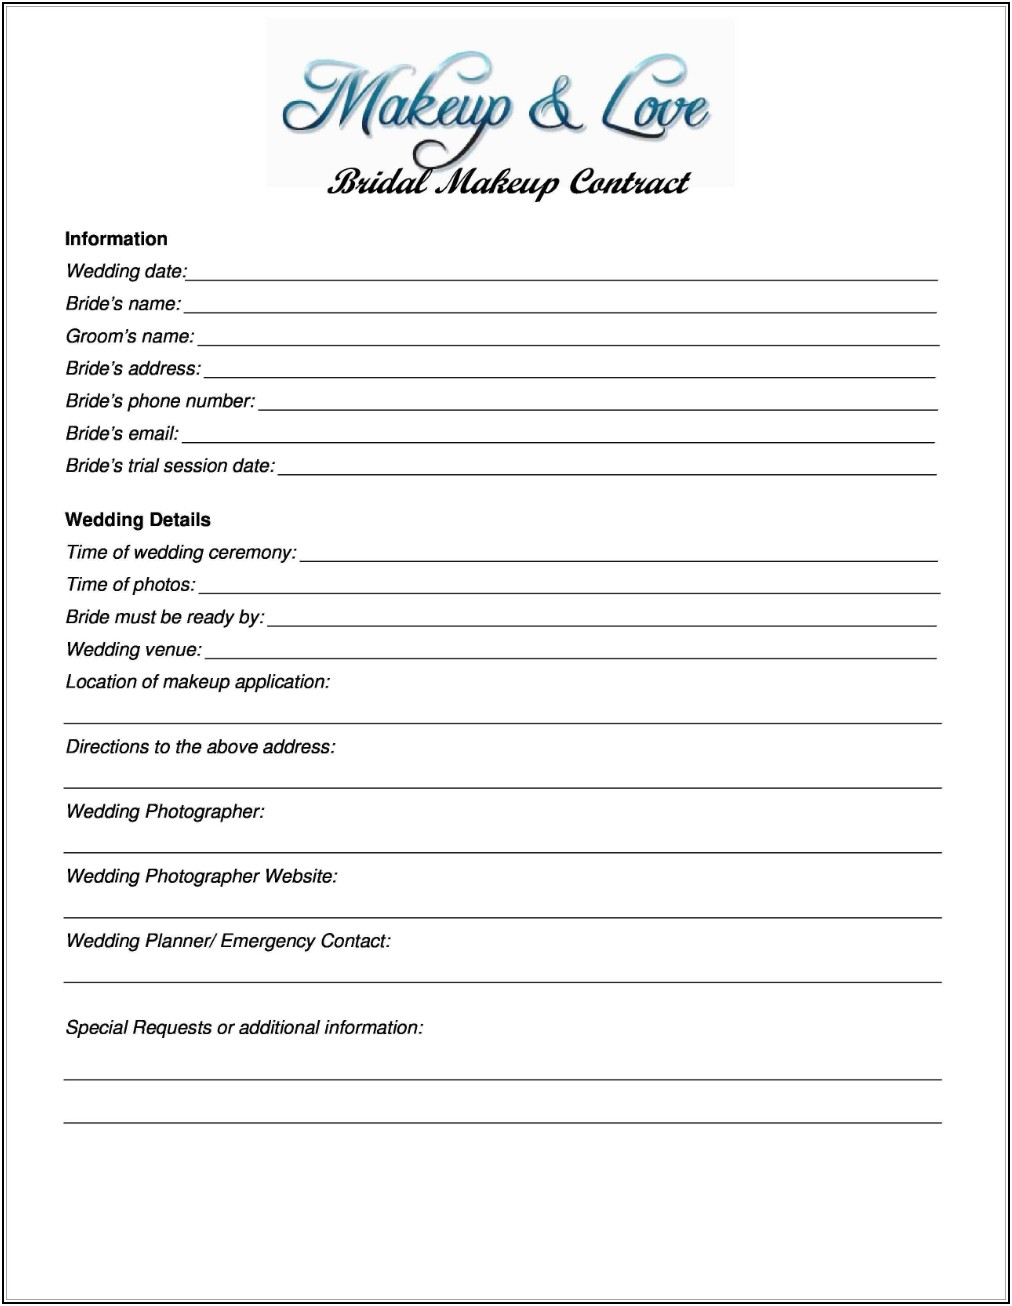 Wedding Makeup Contract Template Free